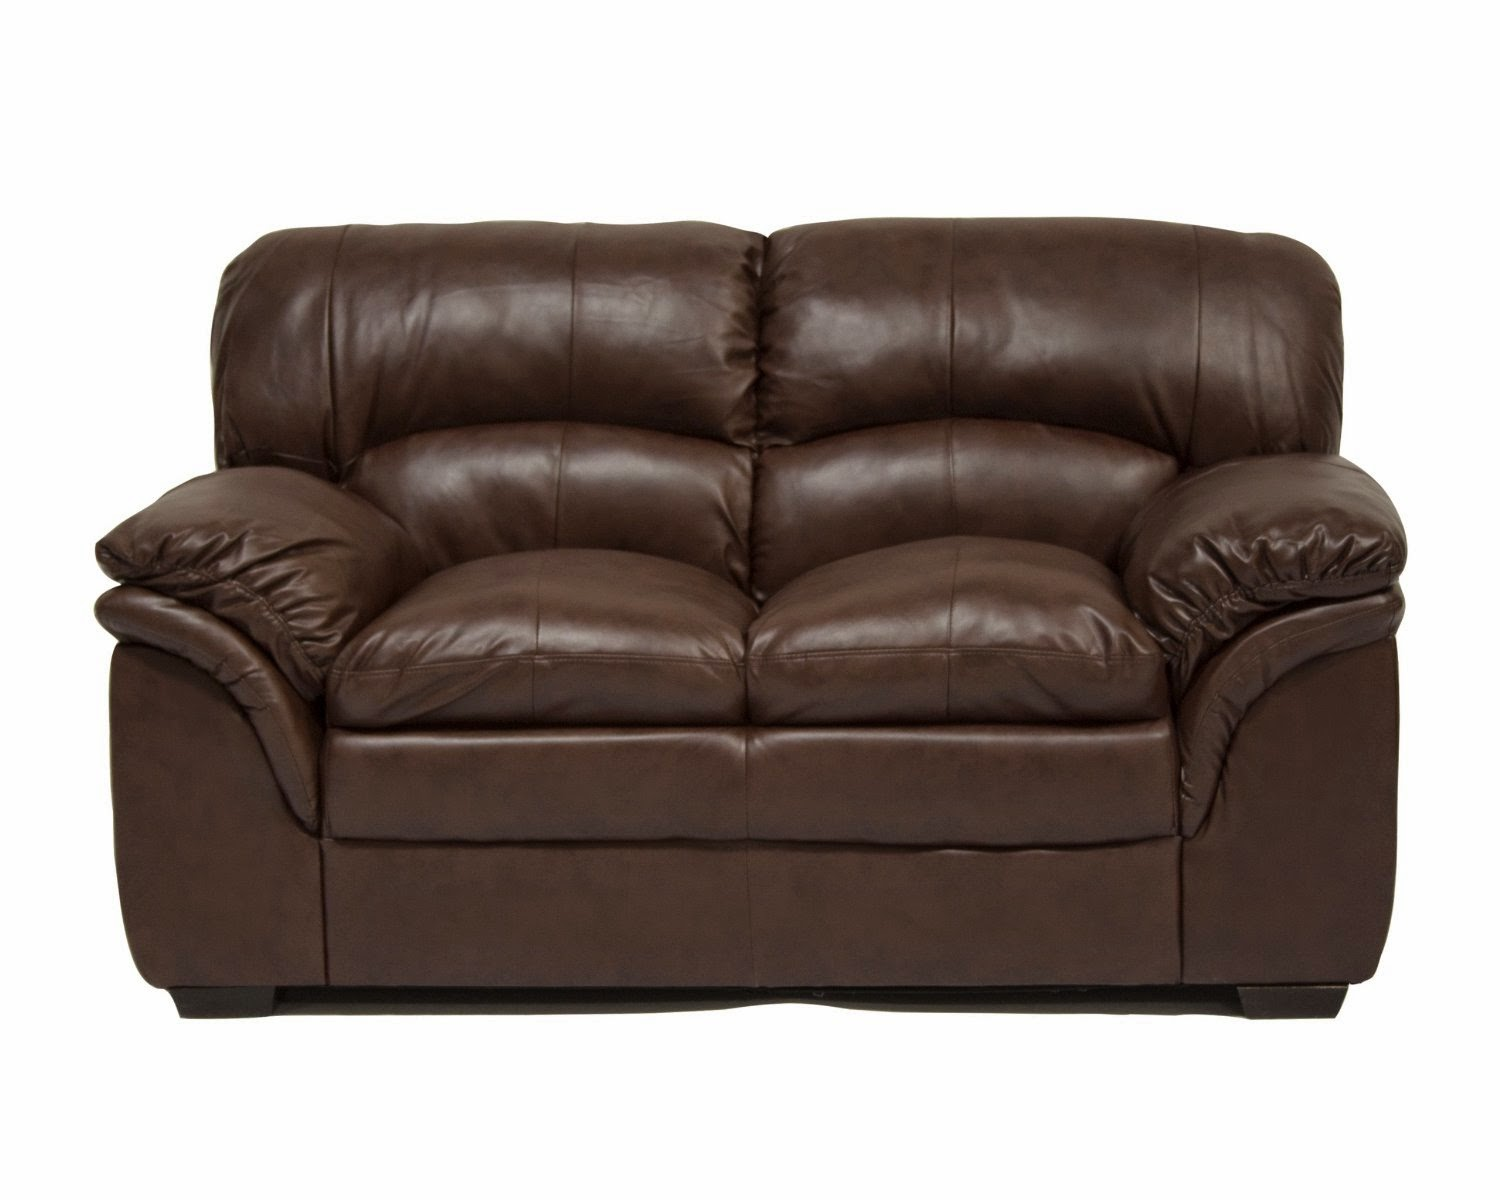 The Best Reclining Sofas Ratings Reviews: 2 Seater Leather Recliner Sofa Uk